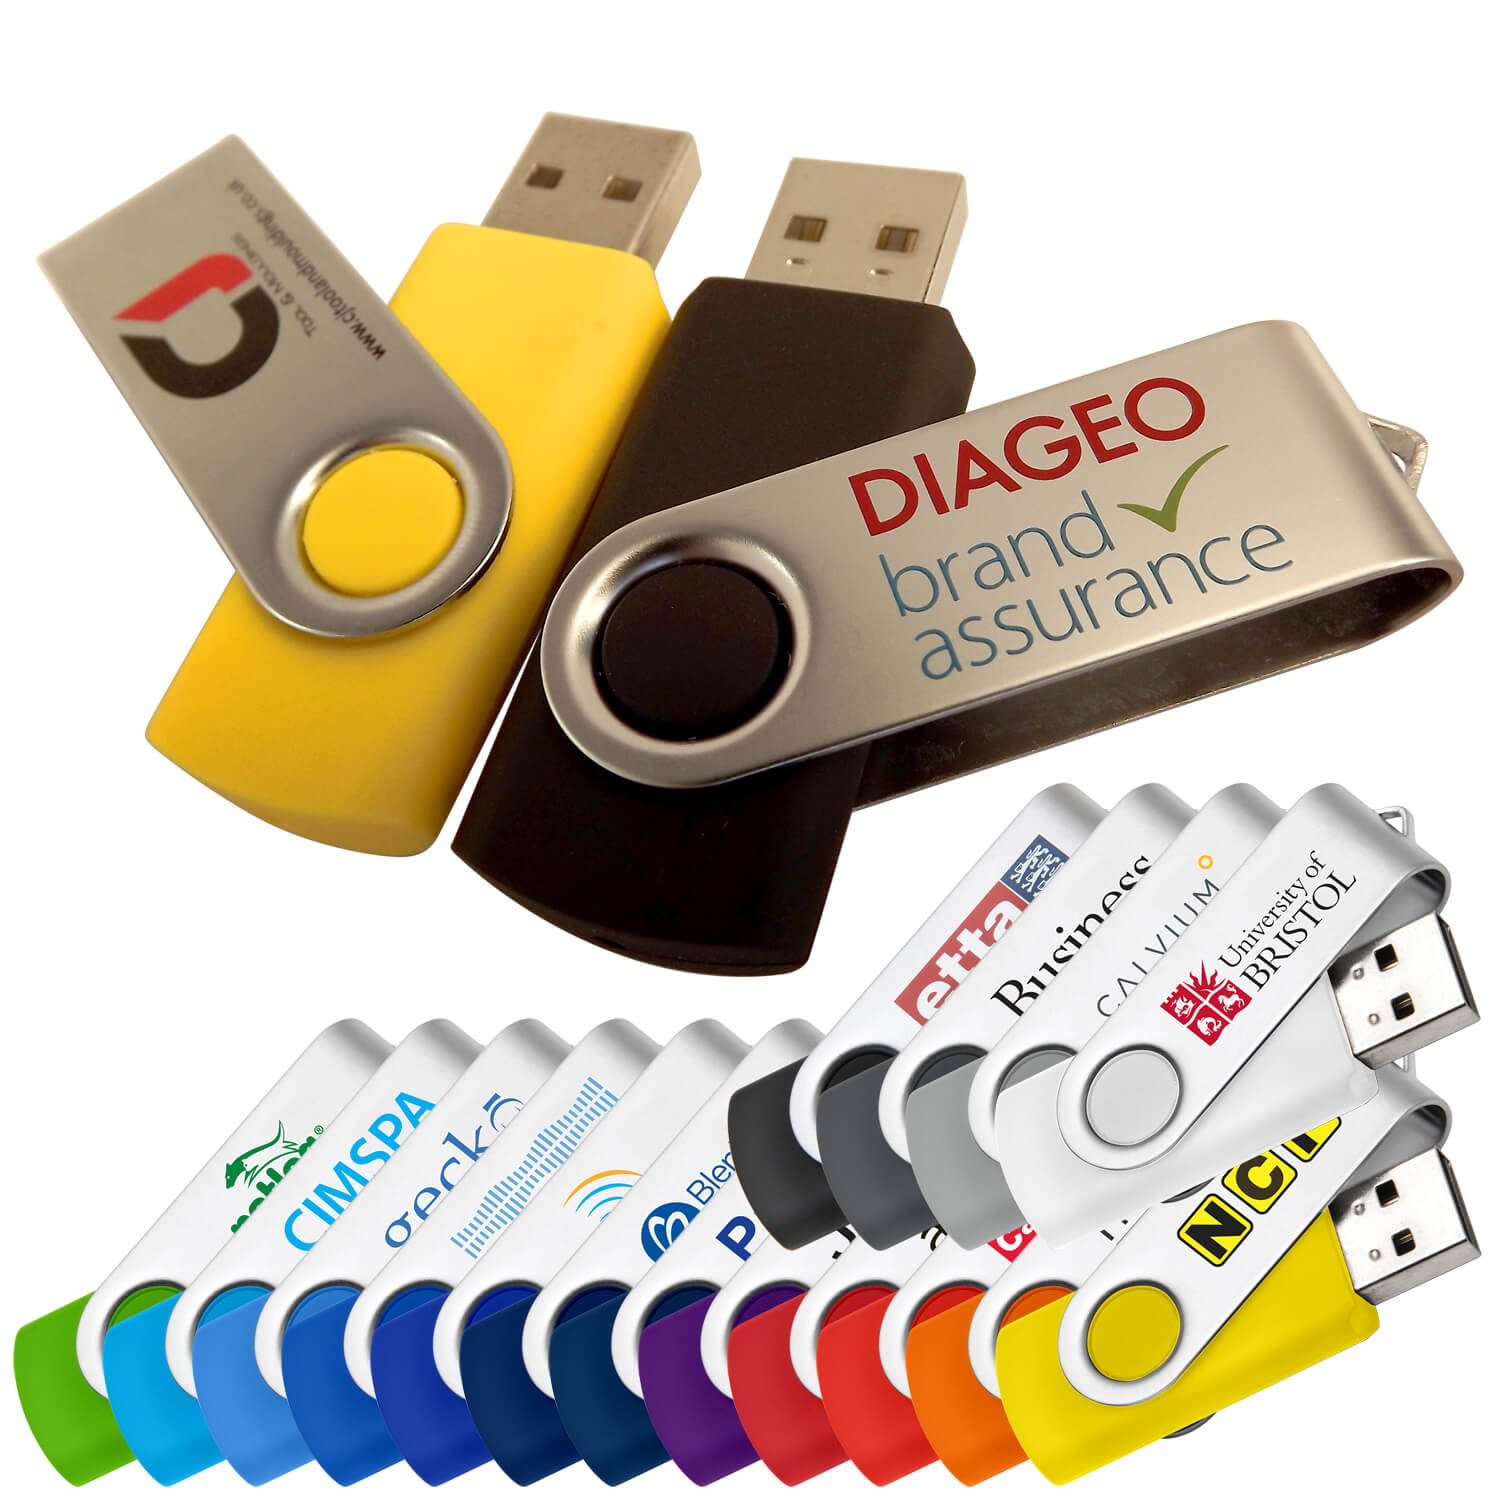 Twisty Promo USB Memory Stick